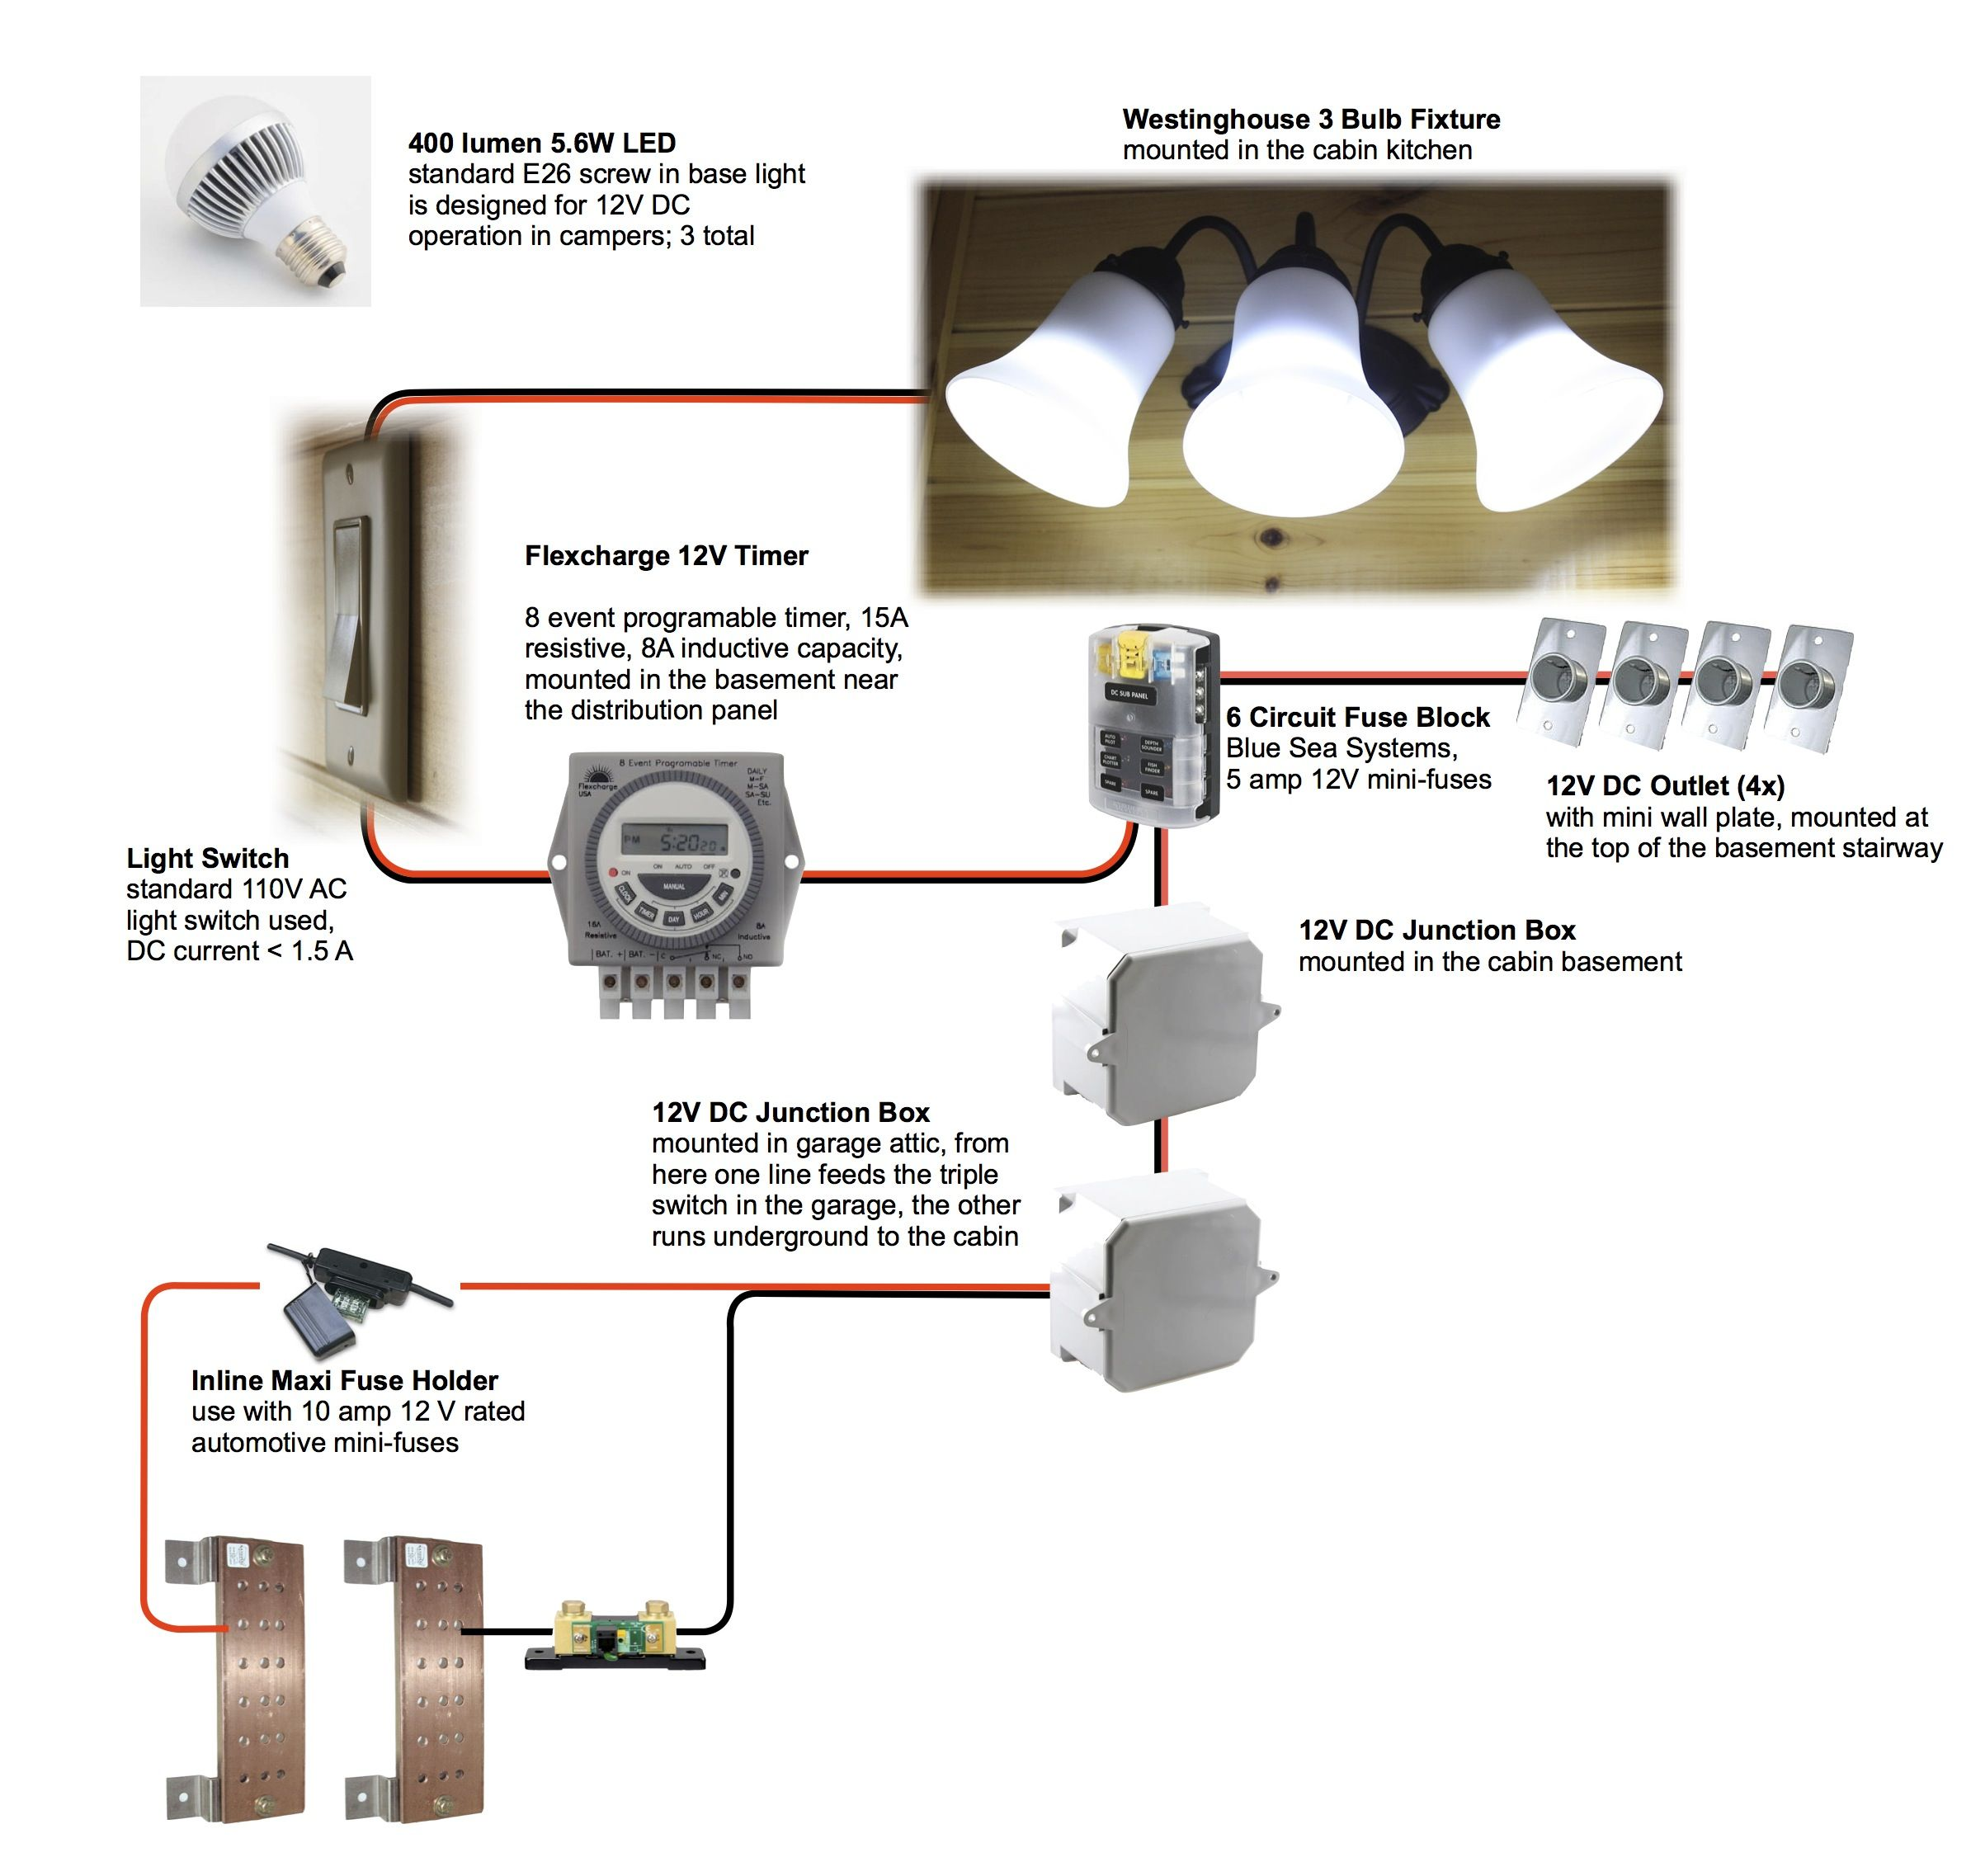 small resolution of wiring dc lights easy wiring diagrams fan switch light wiring diagram light switch wiring dc